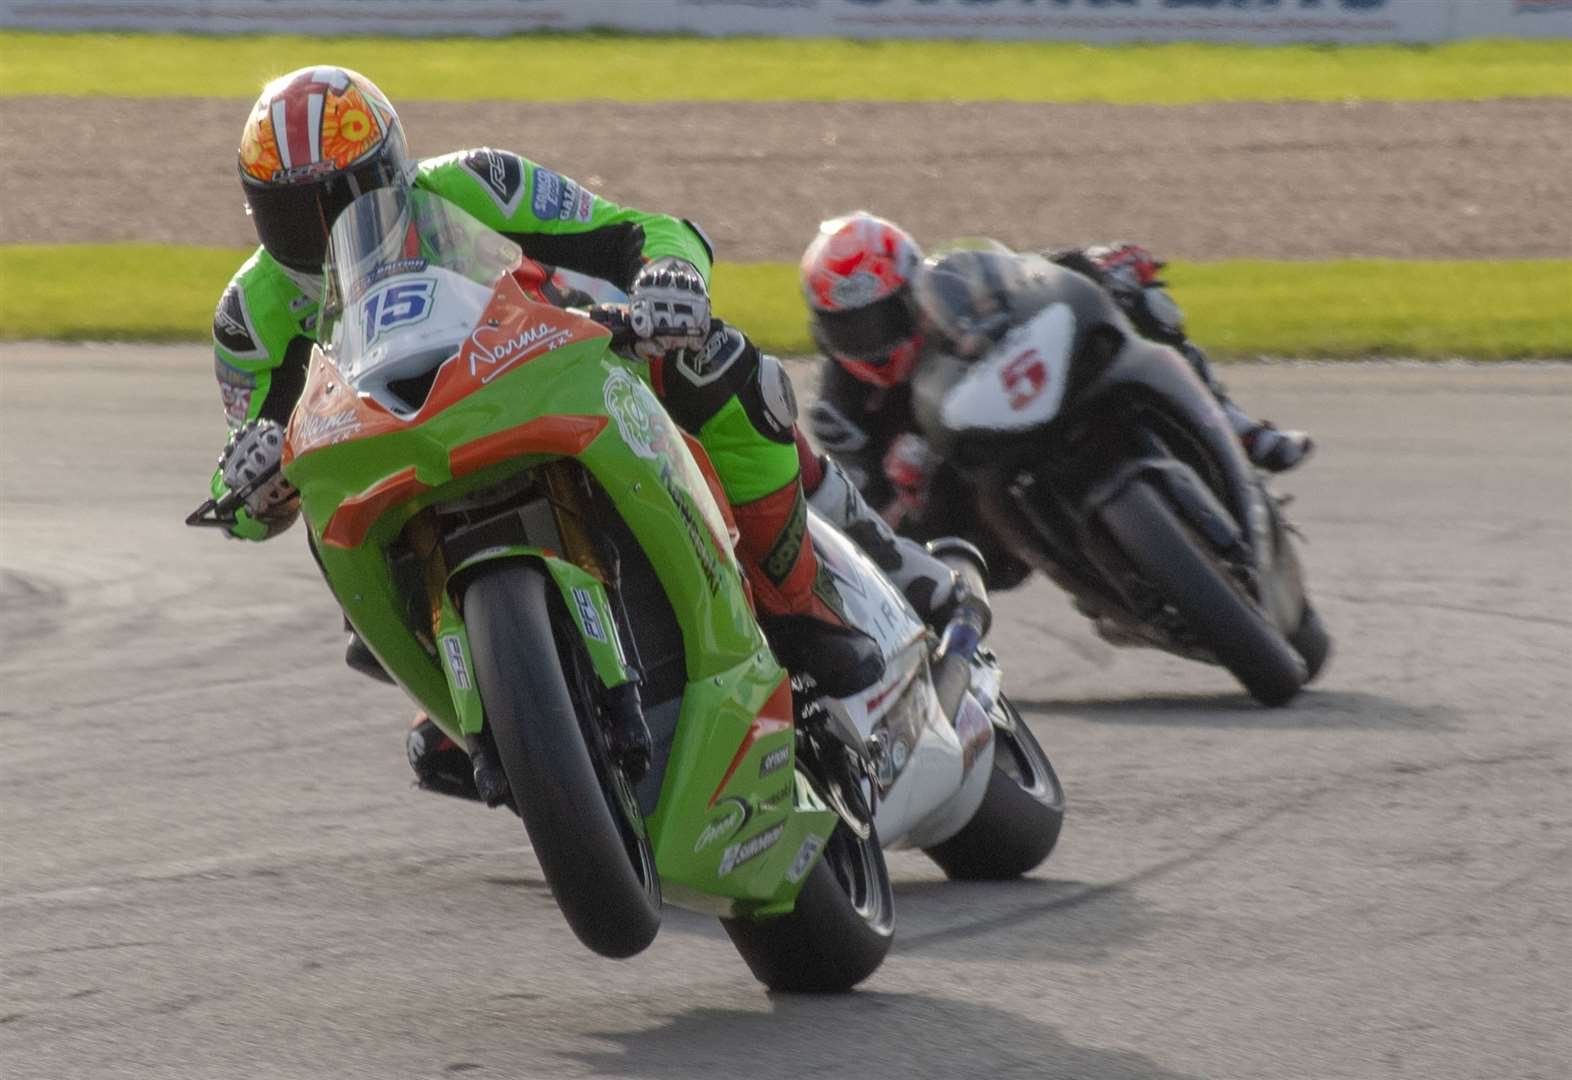 MOTORCYCLING: Ben picks up more championship points